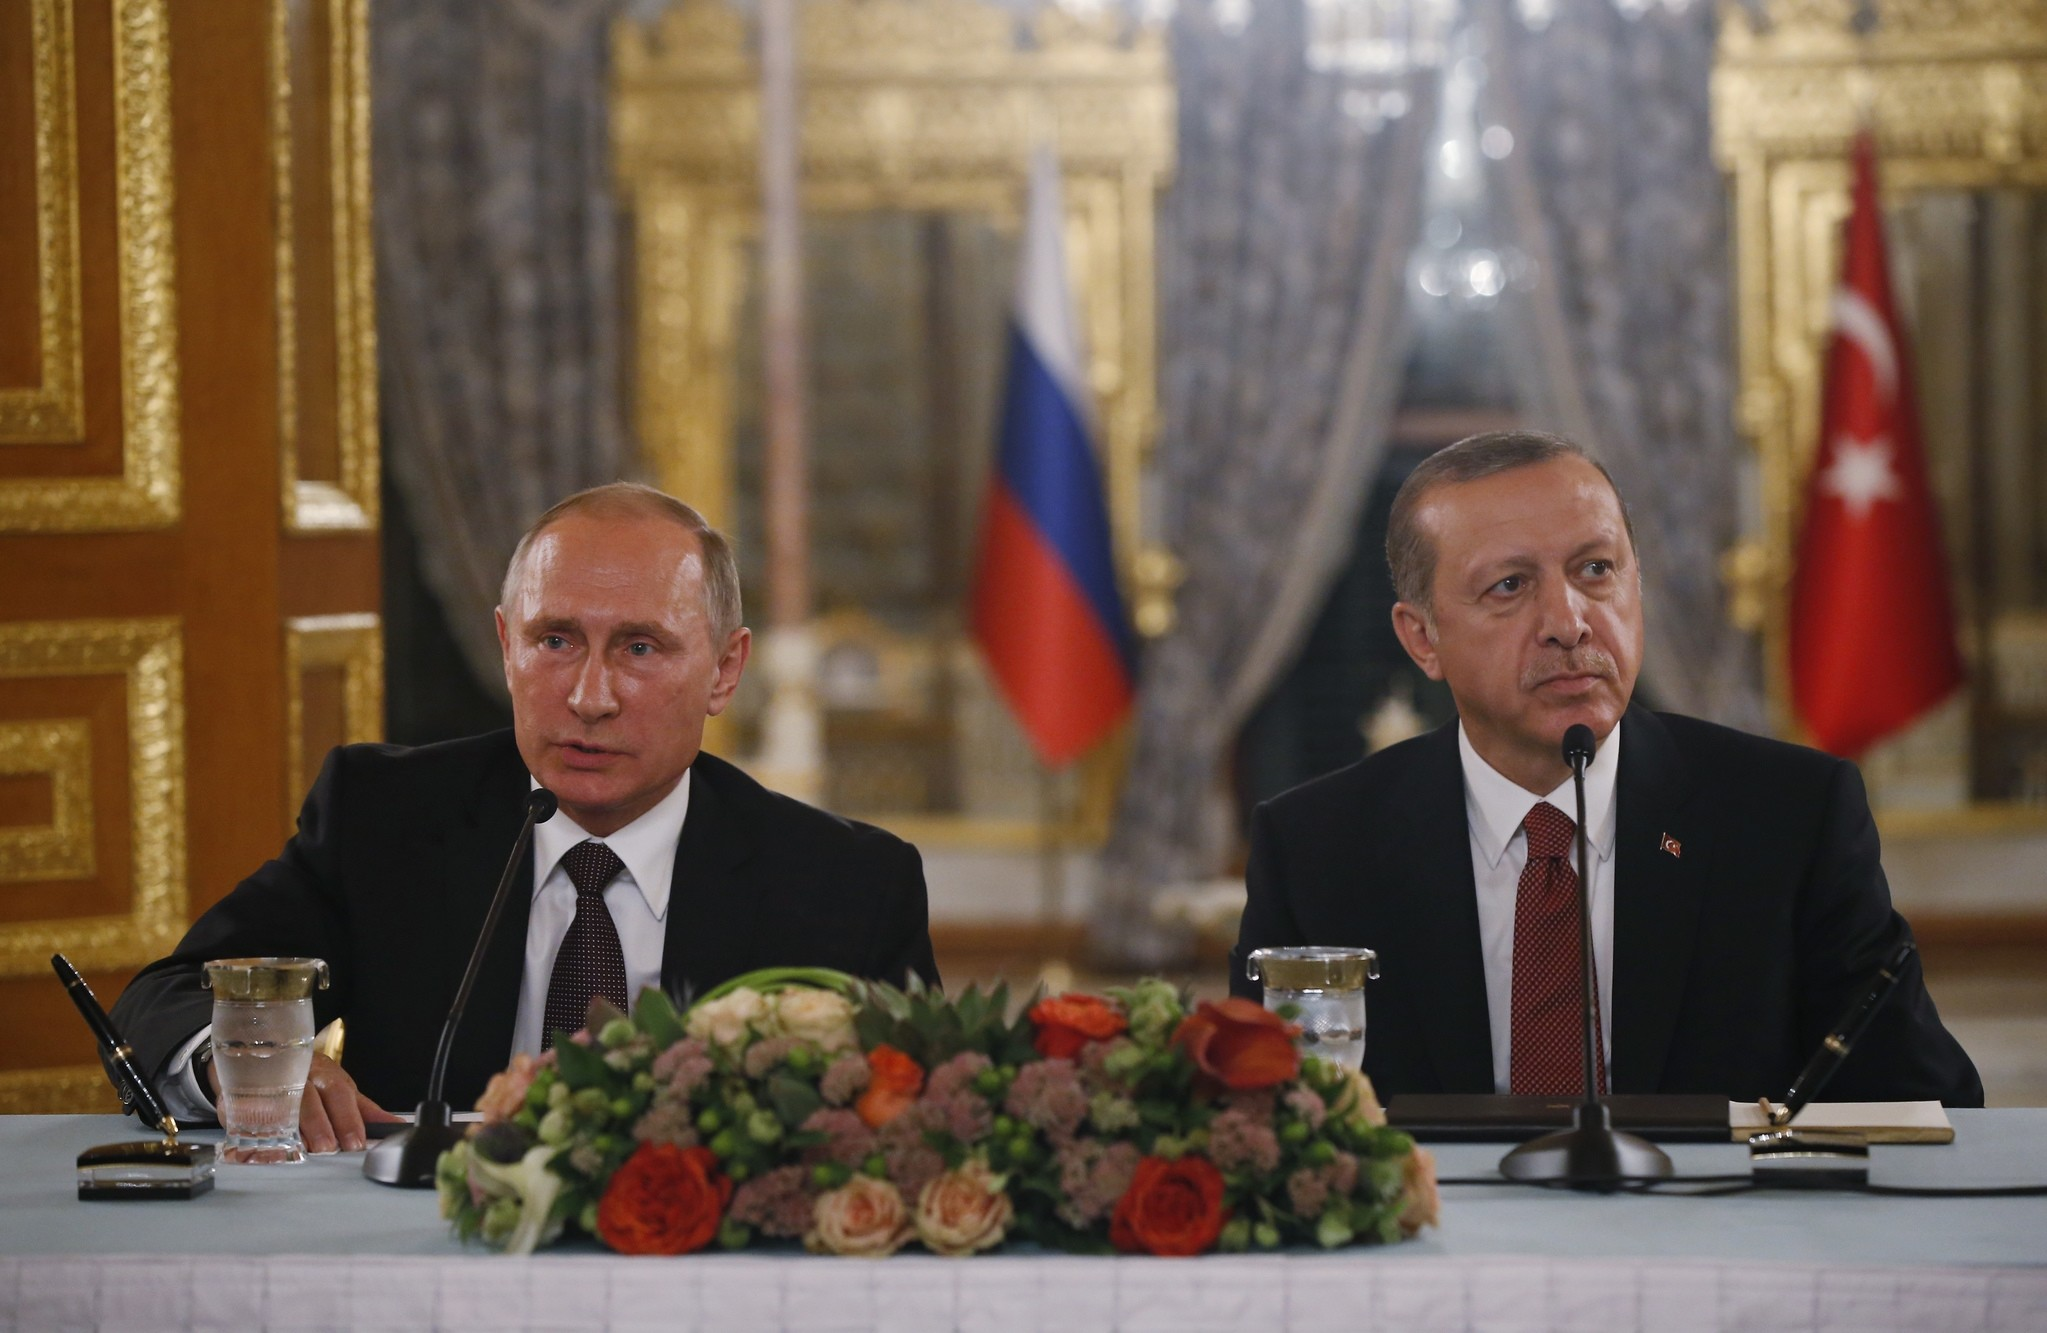 Russian President Vladimir Putin (L) and his Turkish counterpart Tayyip Erdogan give news conference following their meeting in Istanbul, Turkey, October 10, 2016. (AP Photo)